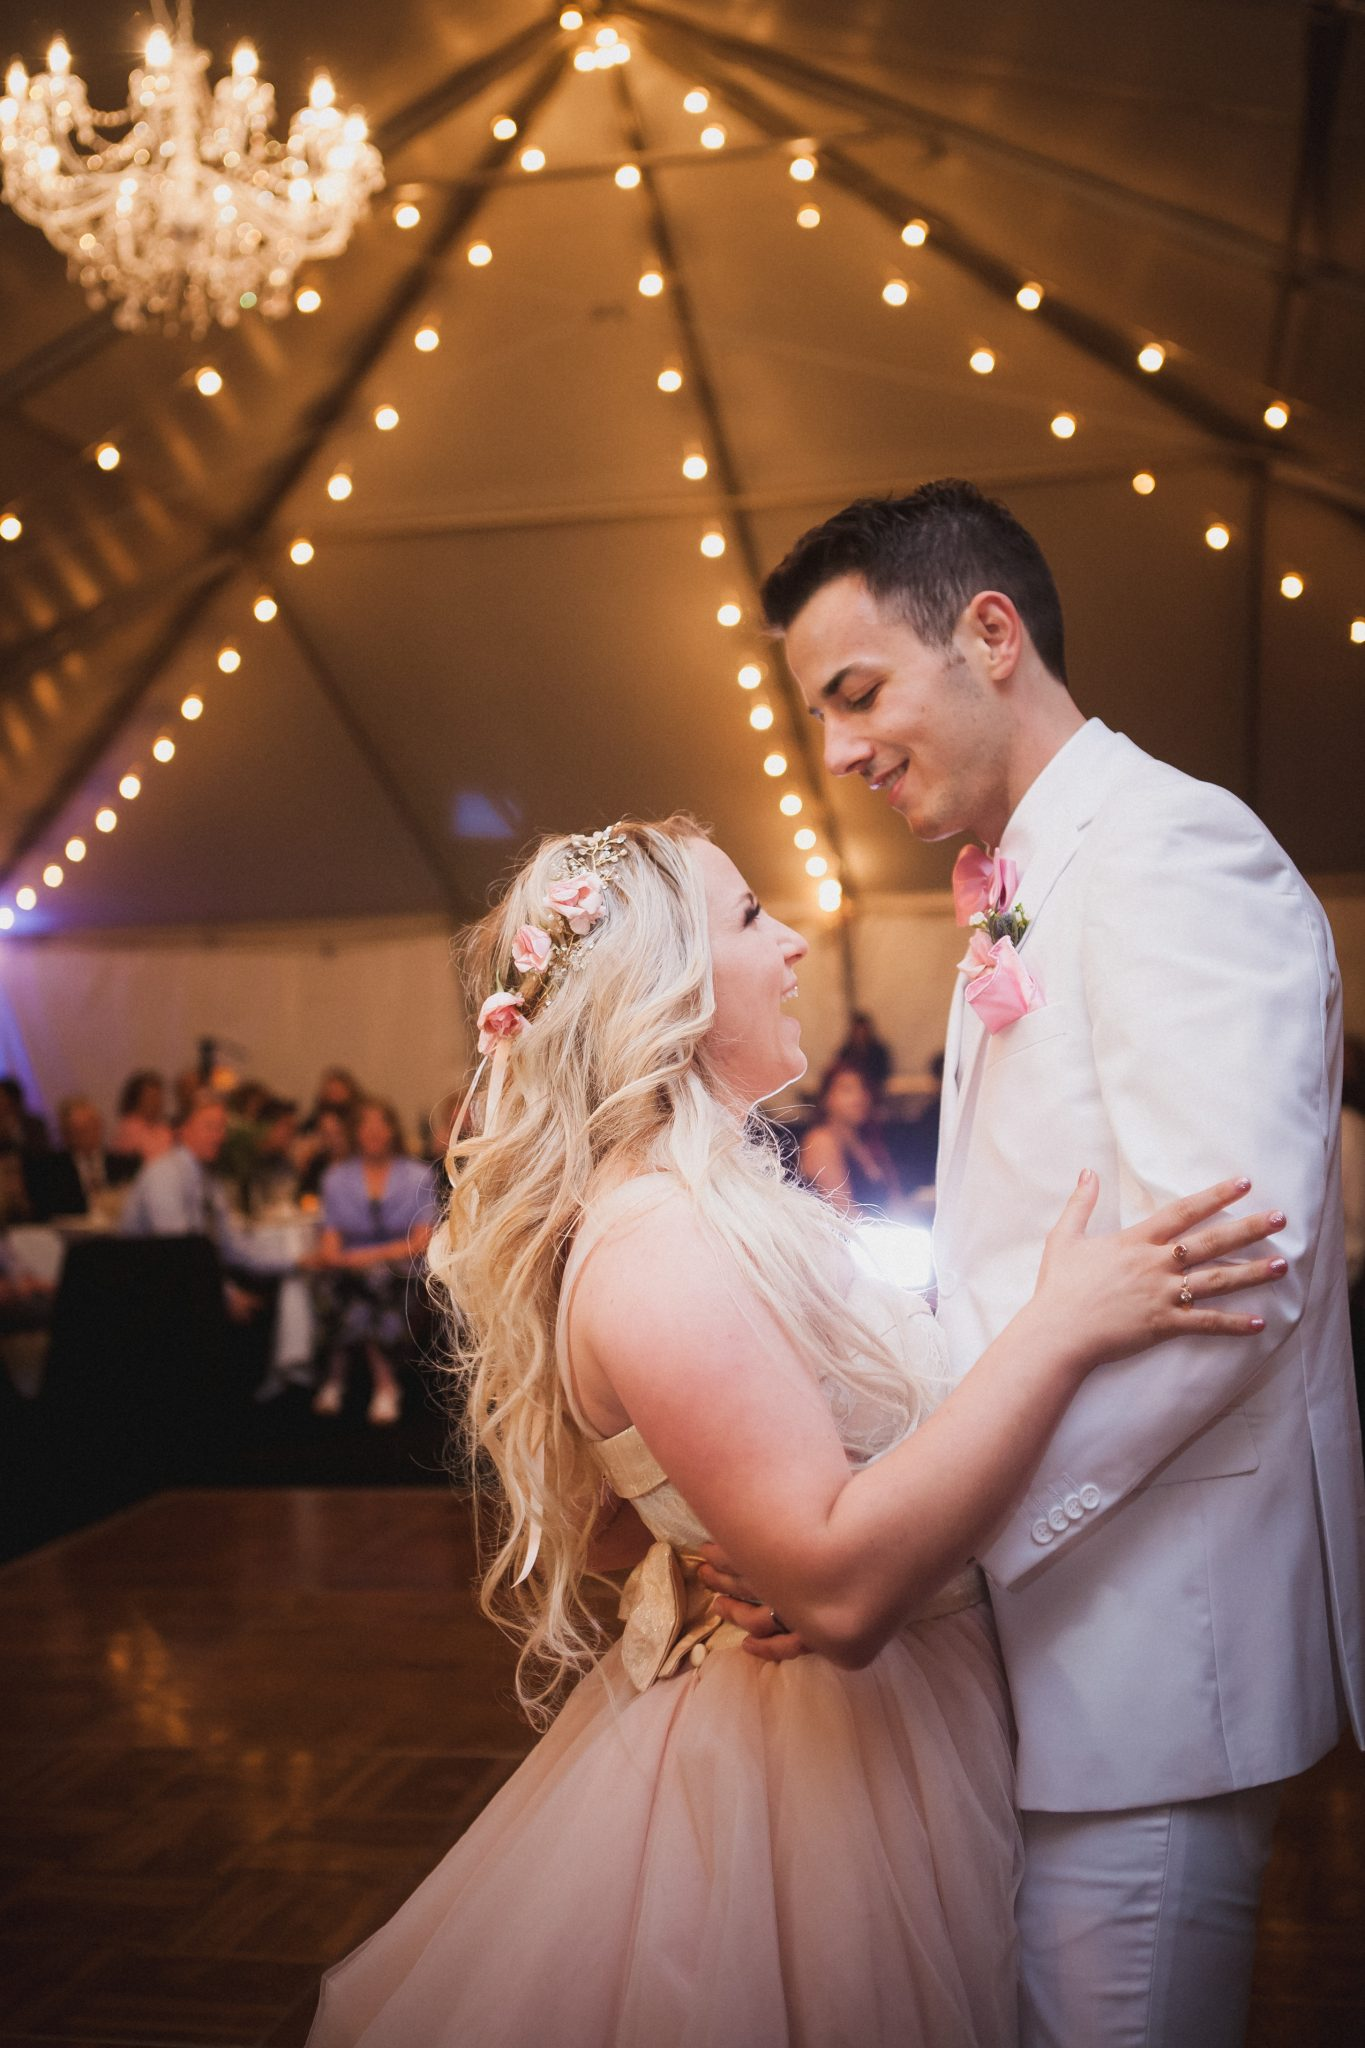 Bride and groom dance their first dance together